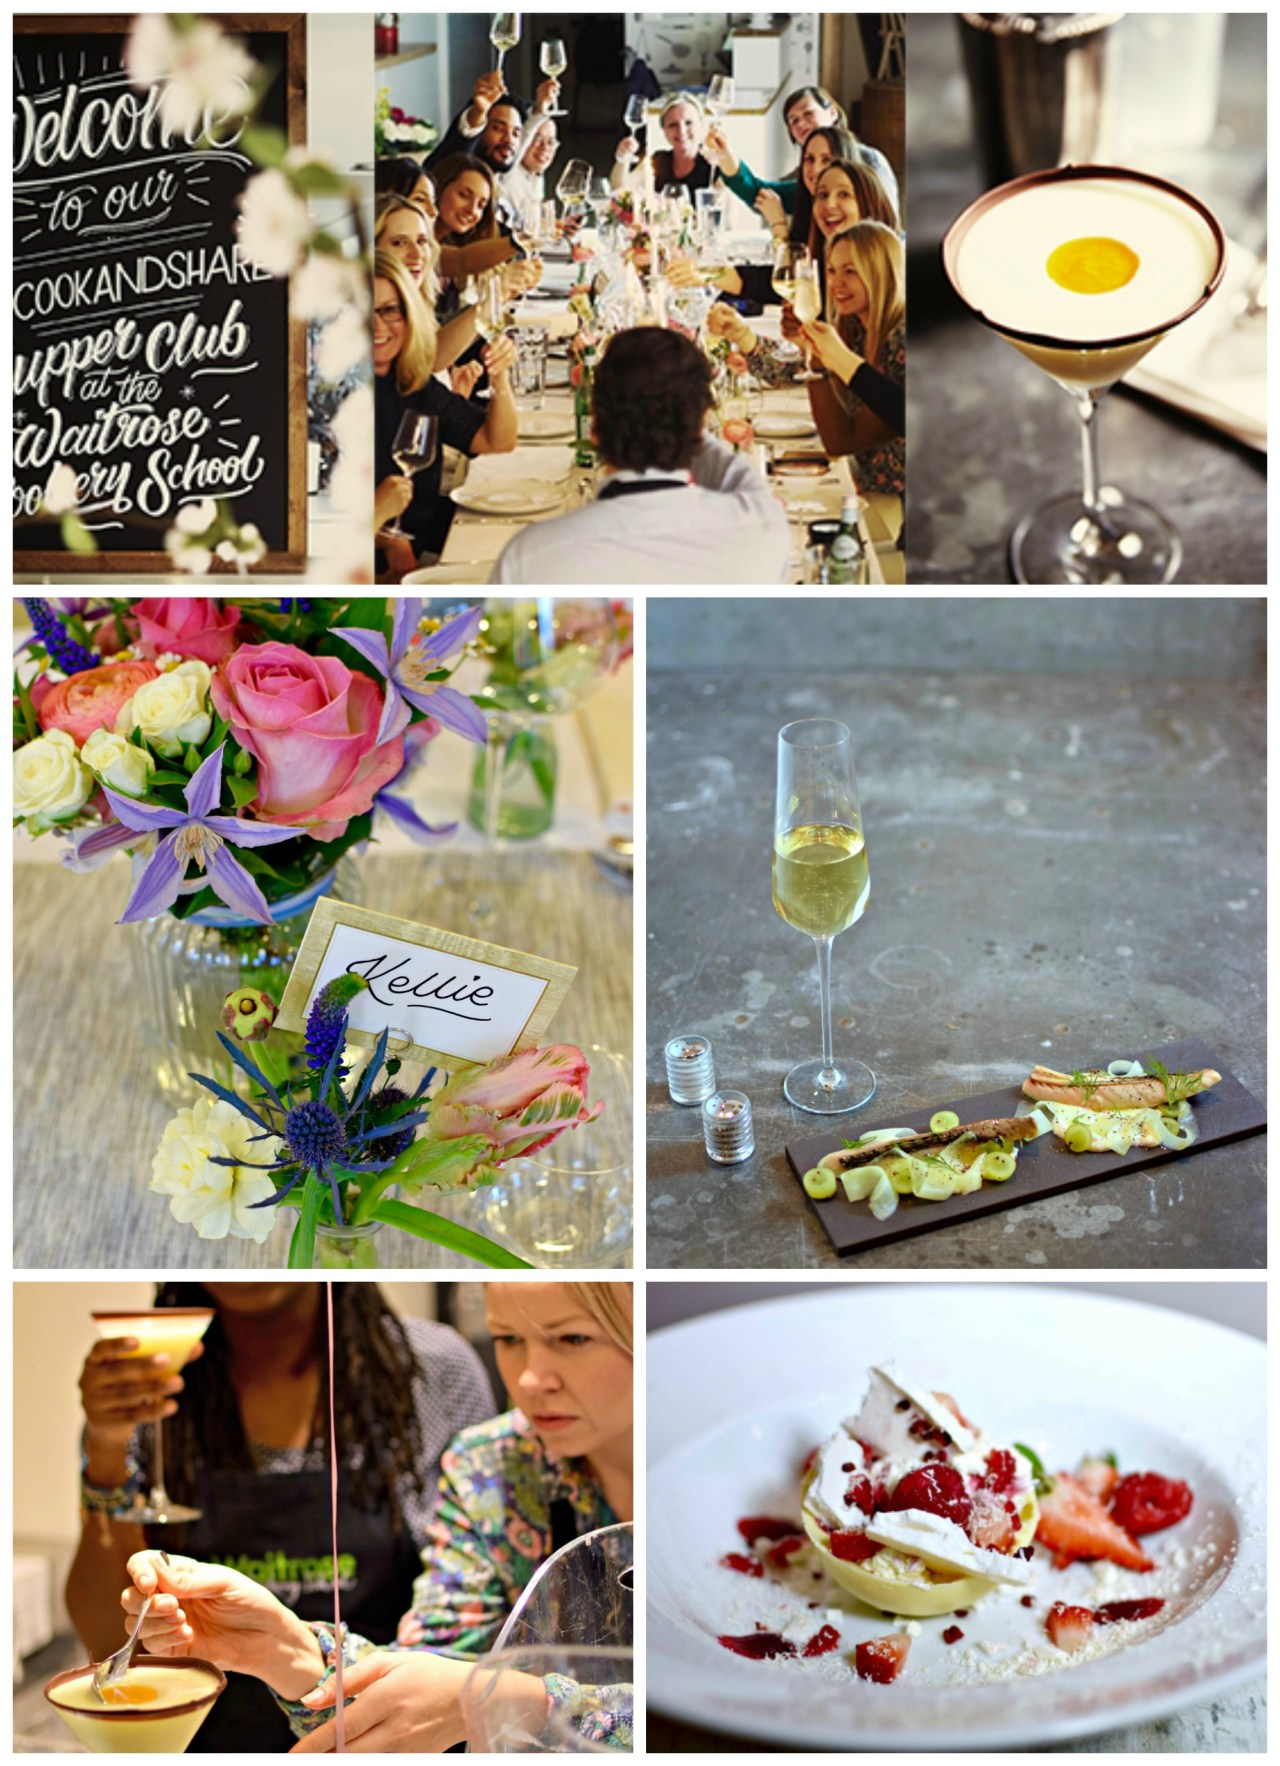 Waitrose #CookandShare event, London